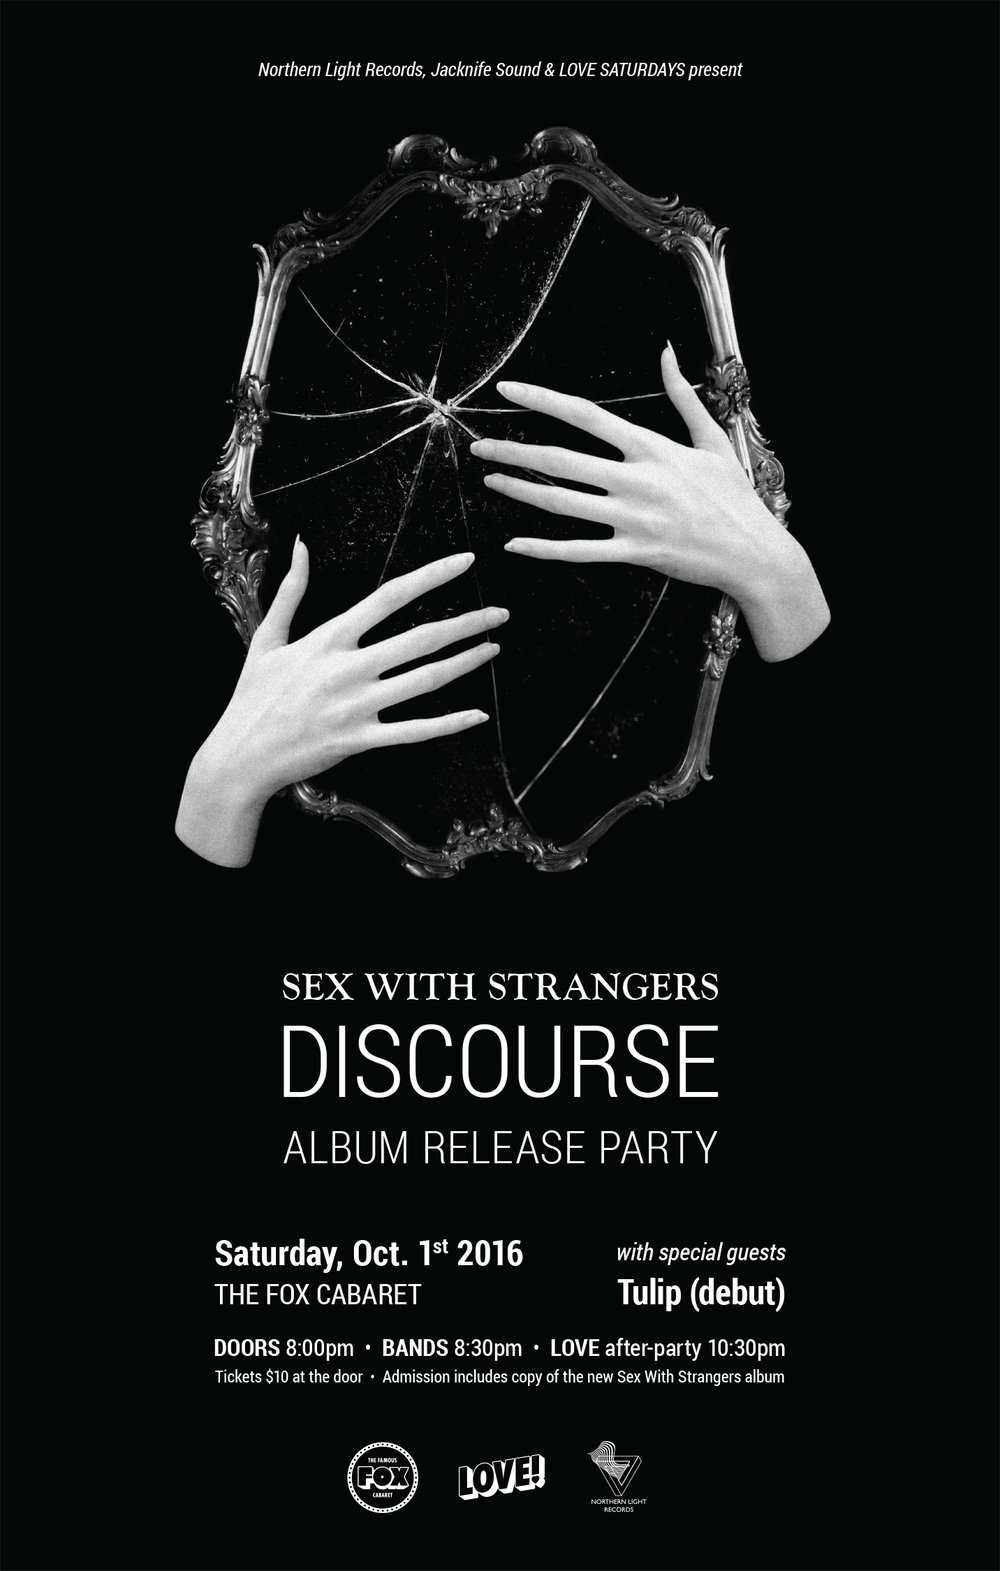 Remarkable, sex with strangers band pity, that